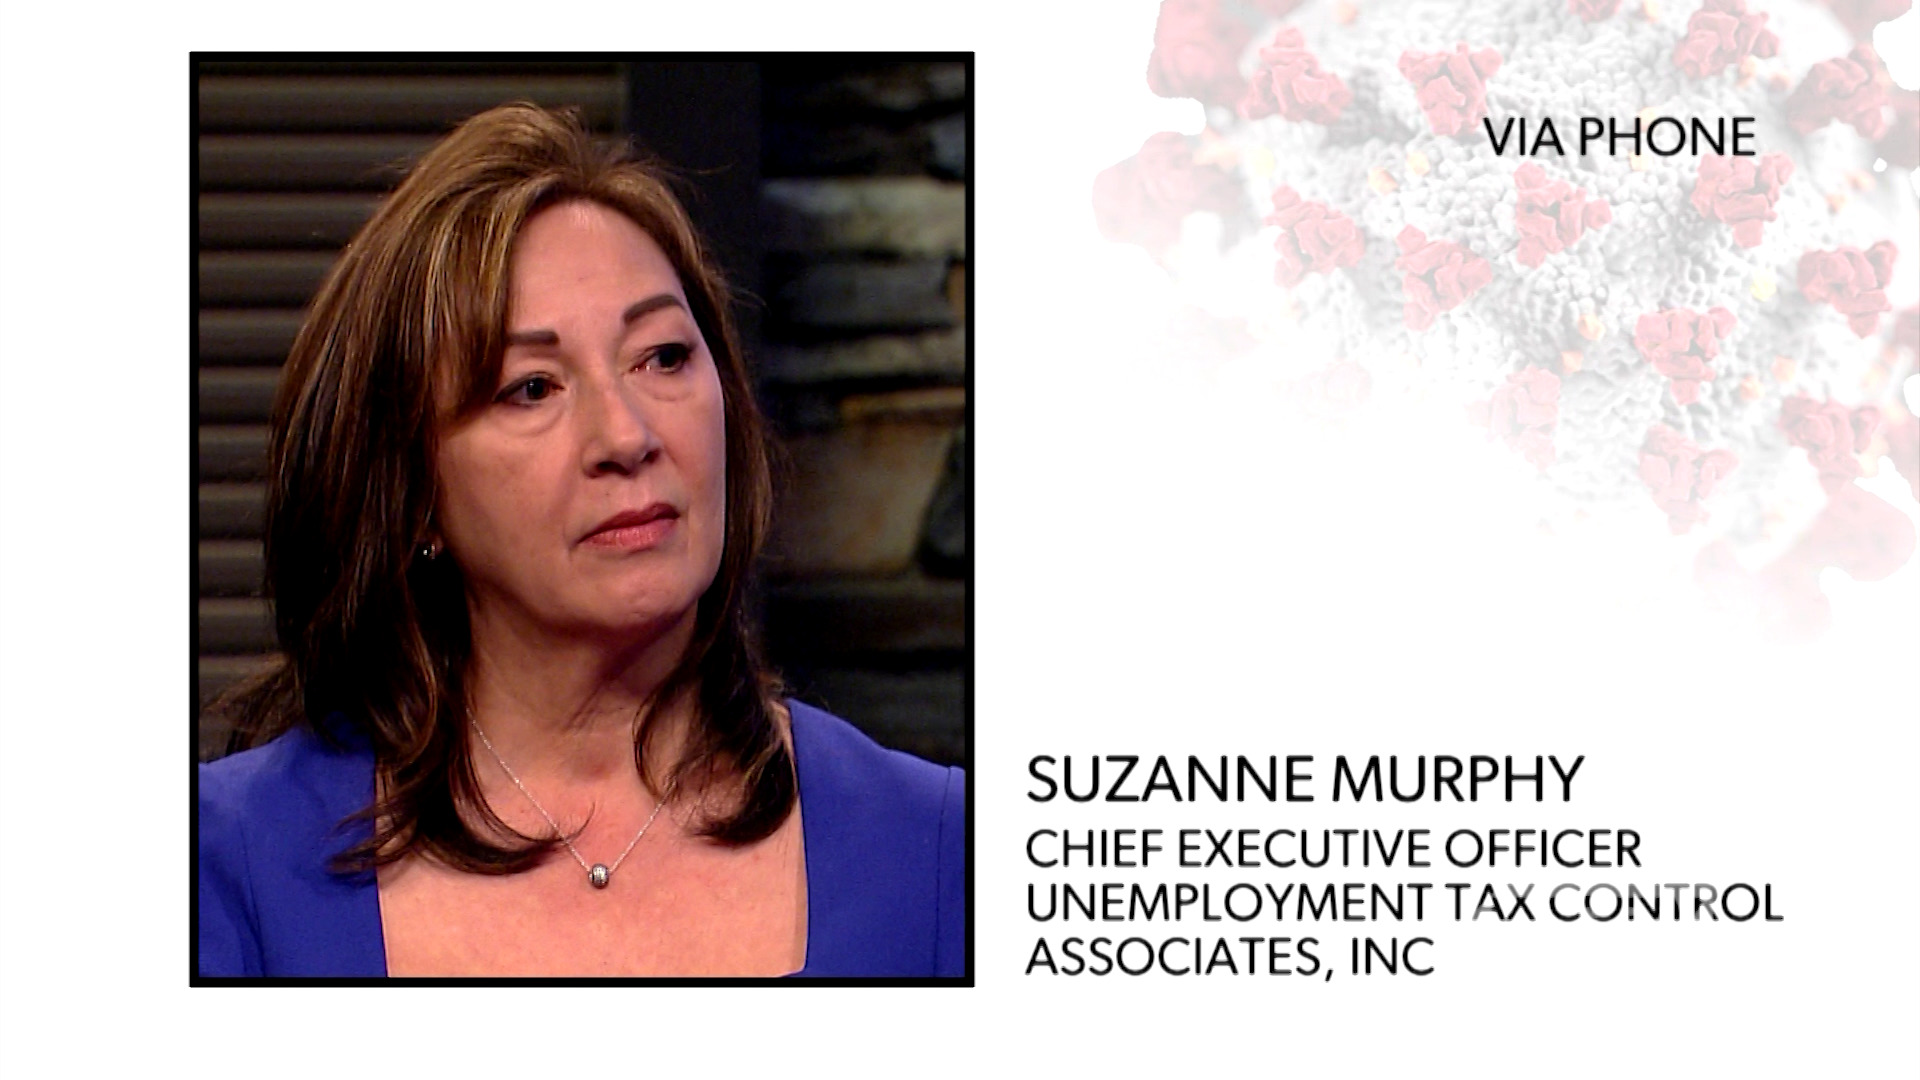 WATCH: Suzanne Murphy weighs in on the rapidly rising unemployment rate and Bernie Sanders exiting the race for the 2020 Democratic Nomination.